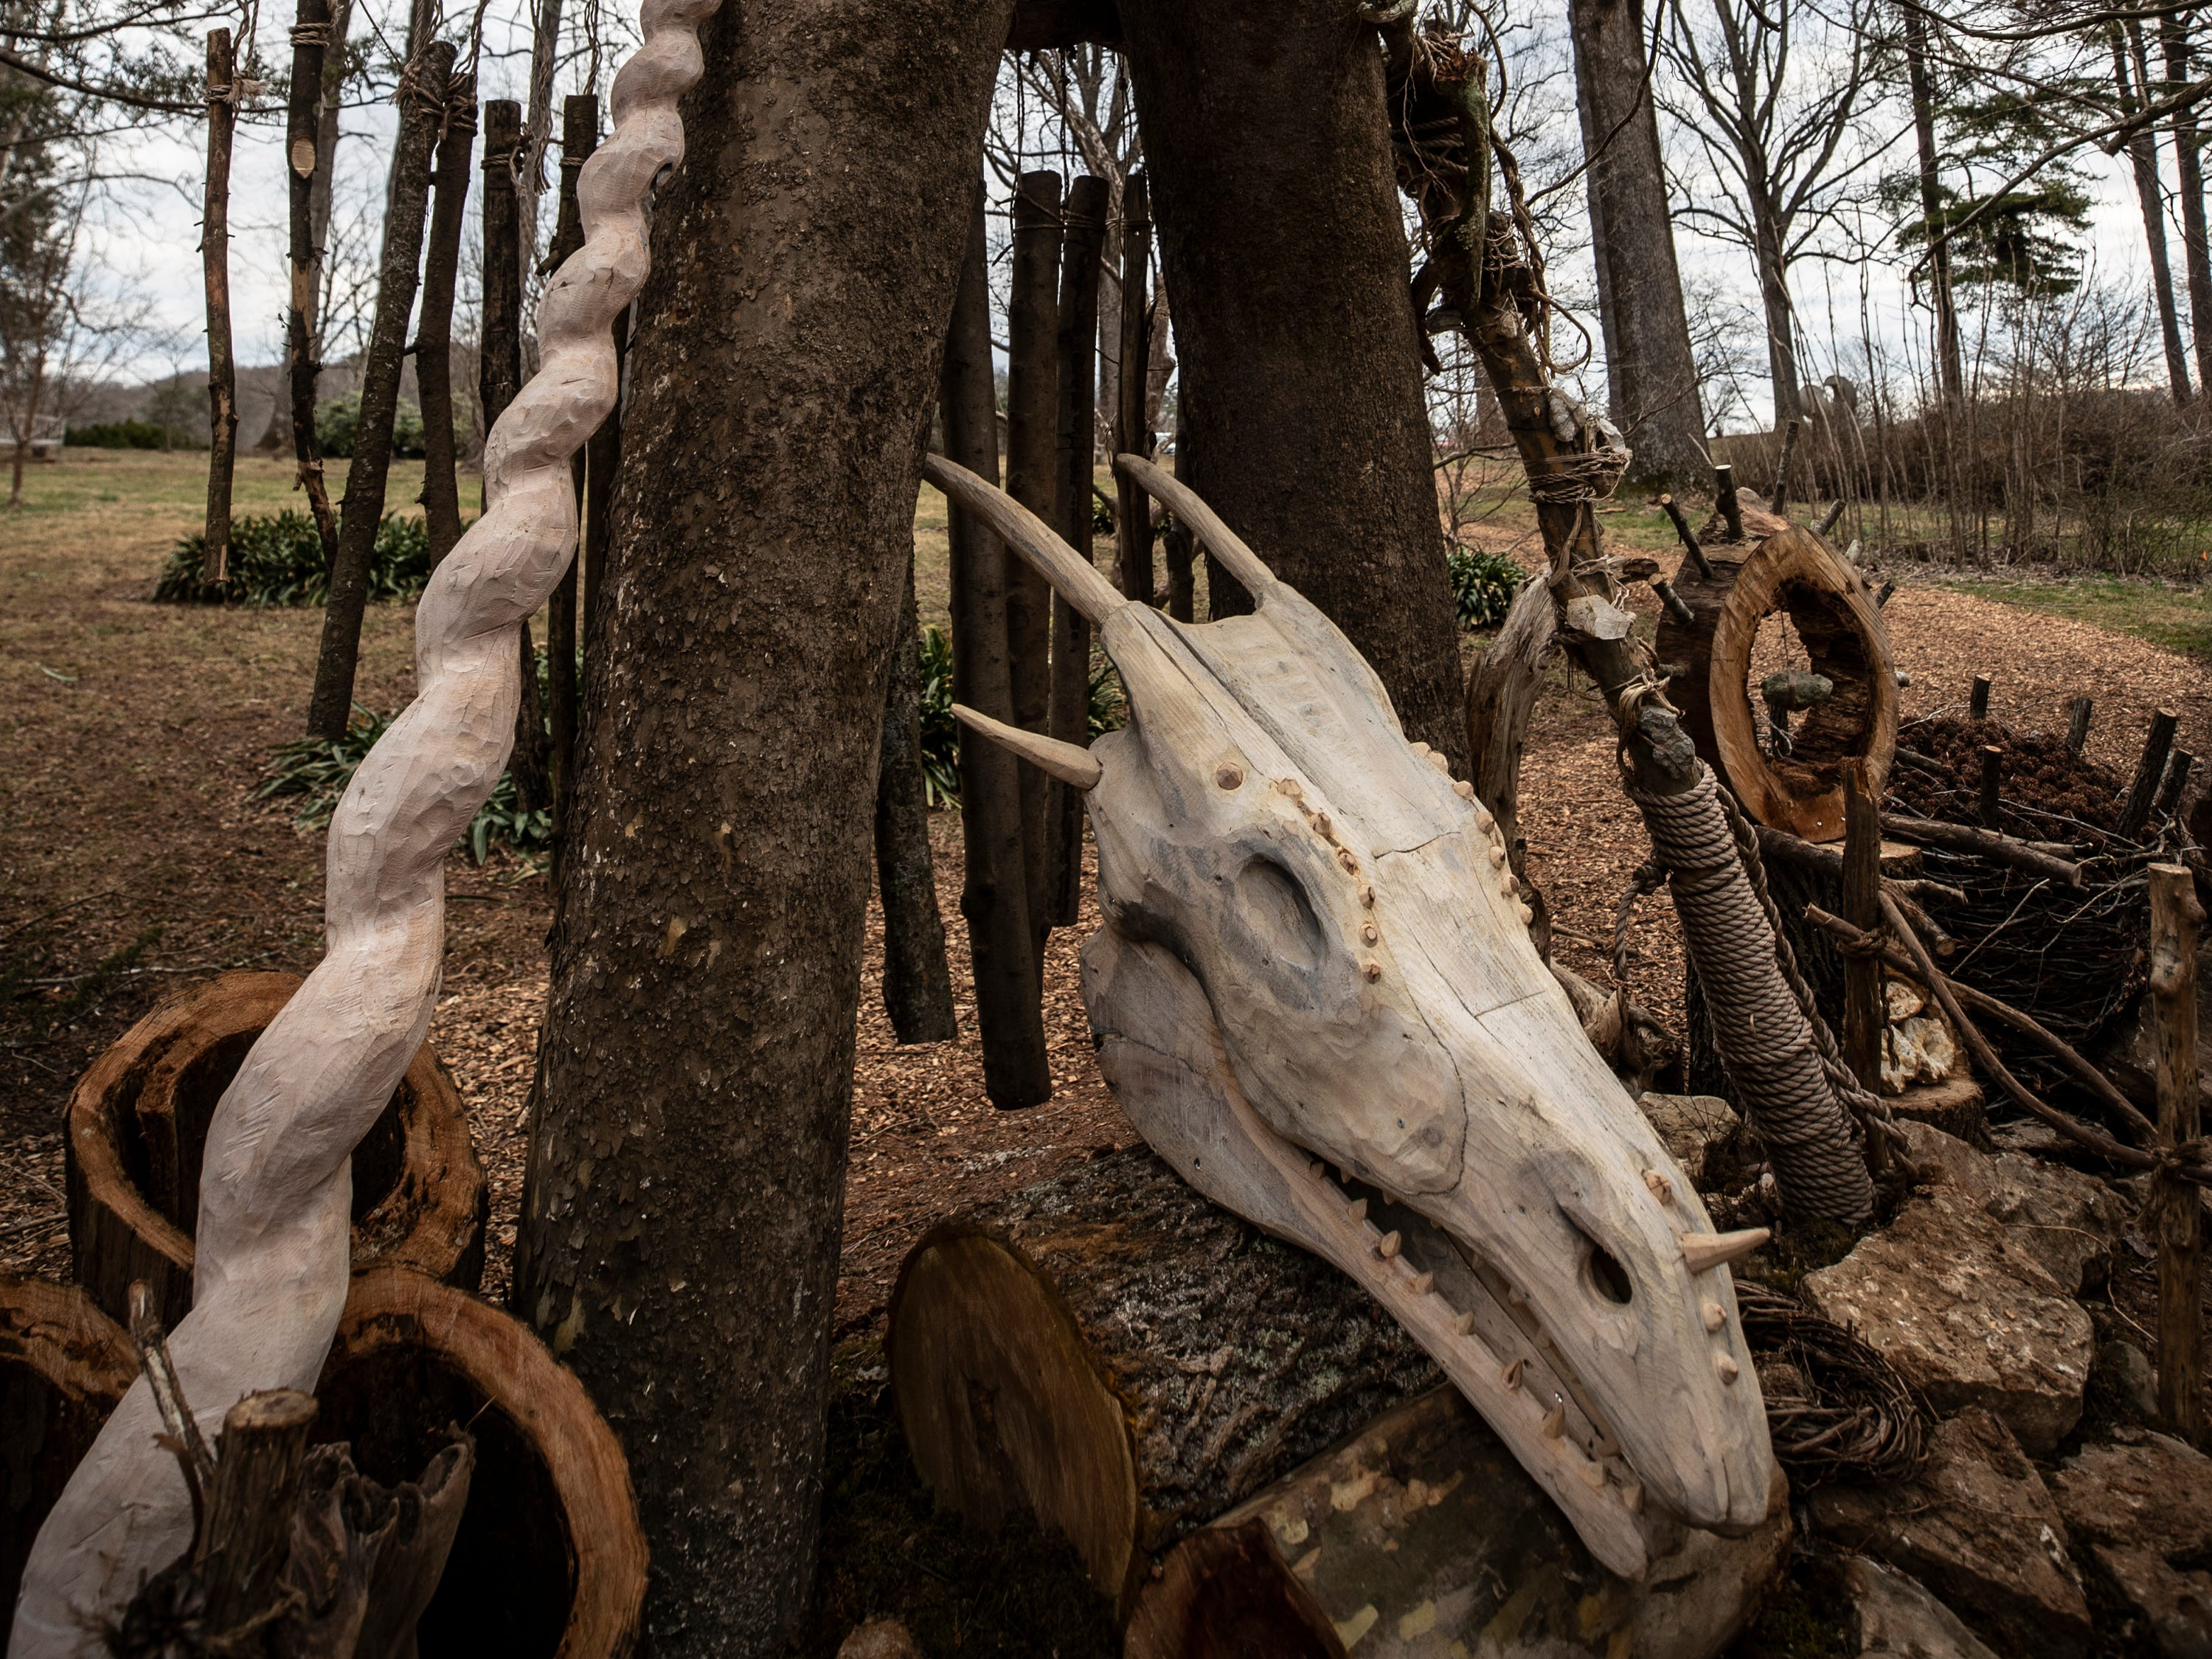 An altar created by artist Thomas Dambo at Bernheim Forest for the pregnant giant troll, Mamma Loumari includes a unicorn's horn and a dragon's head. The items are from Scandinavian folklore involving trolls. March 15, 2019.